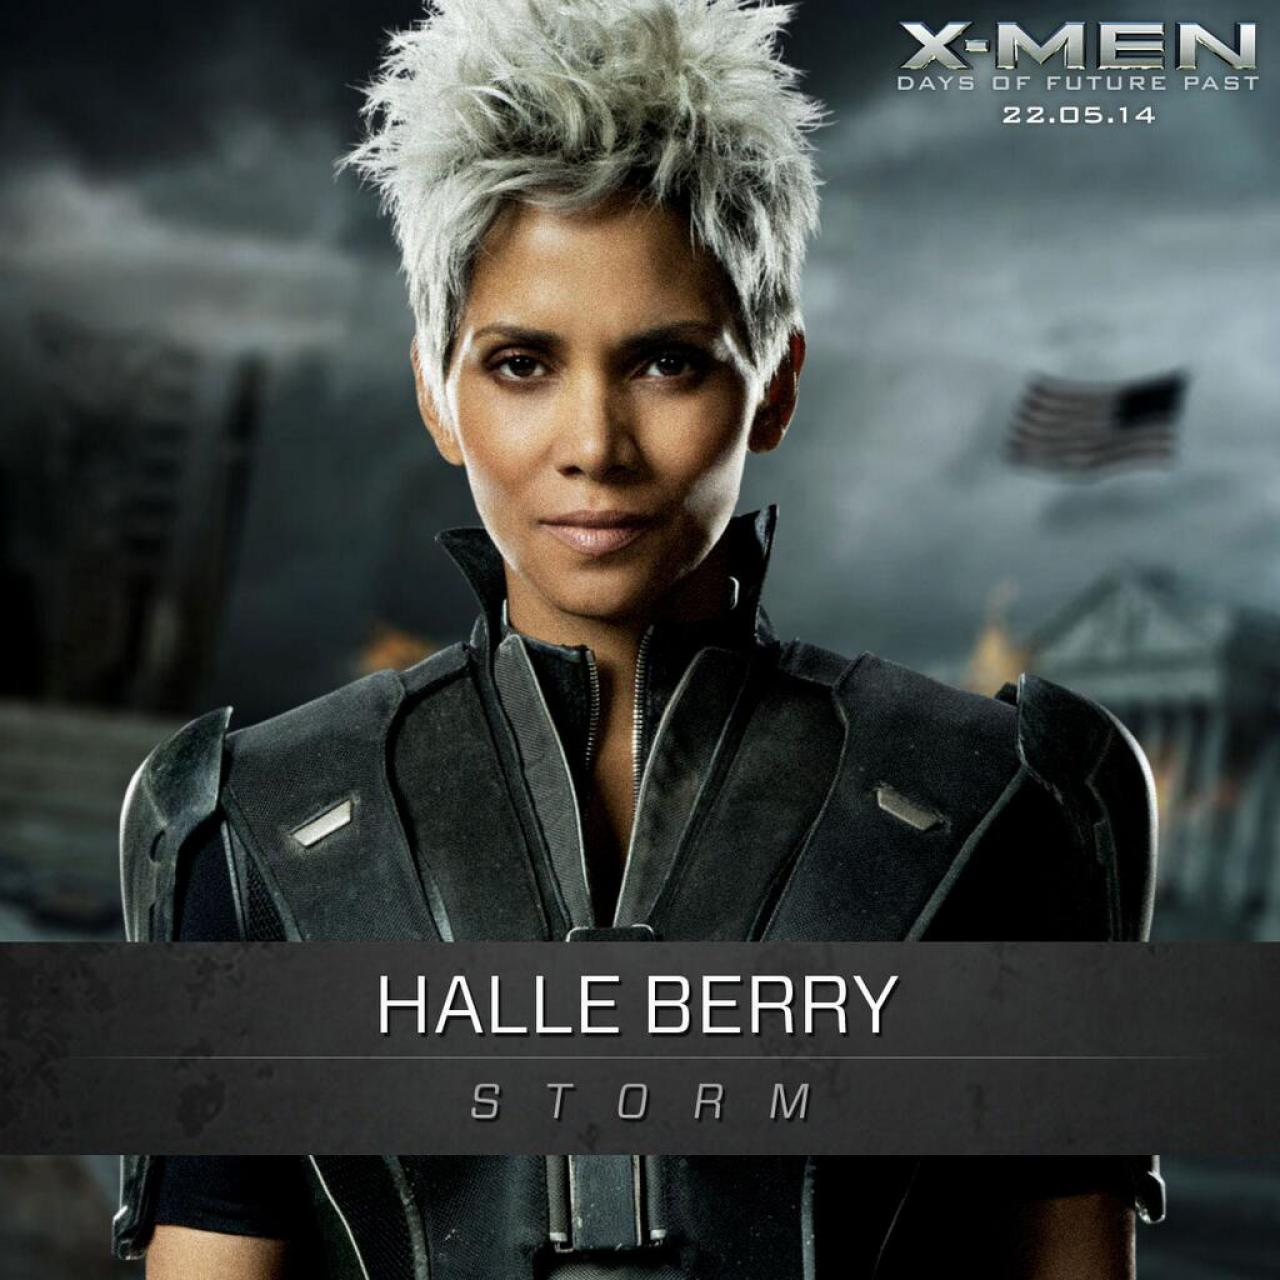 X-Men: Days of Future Past – New Character Images Released